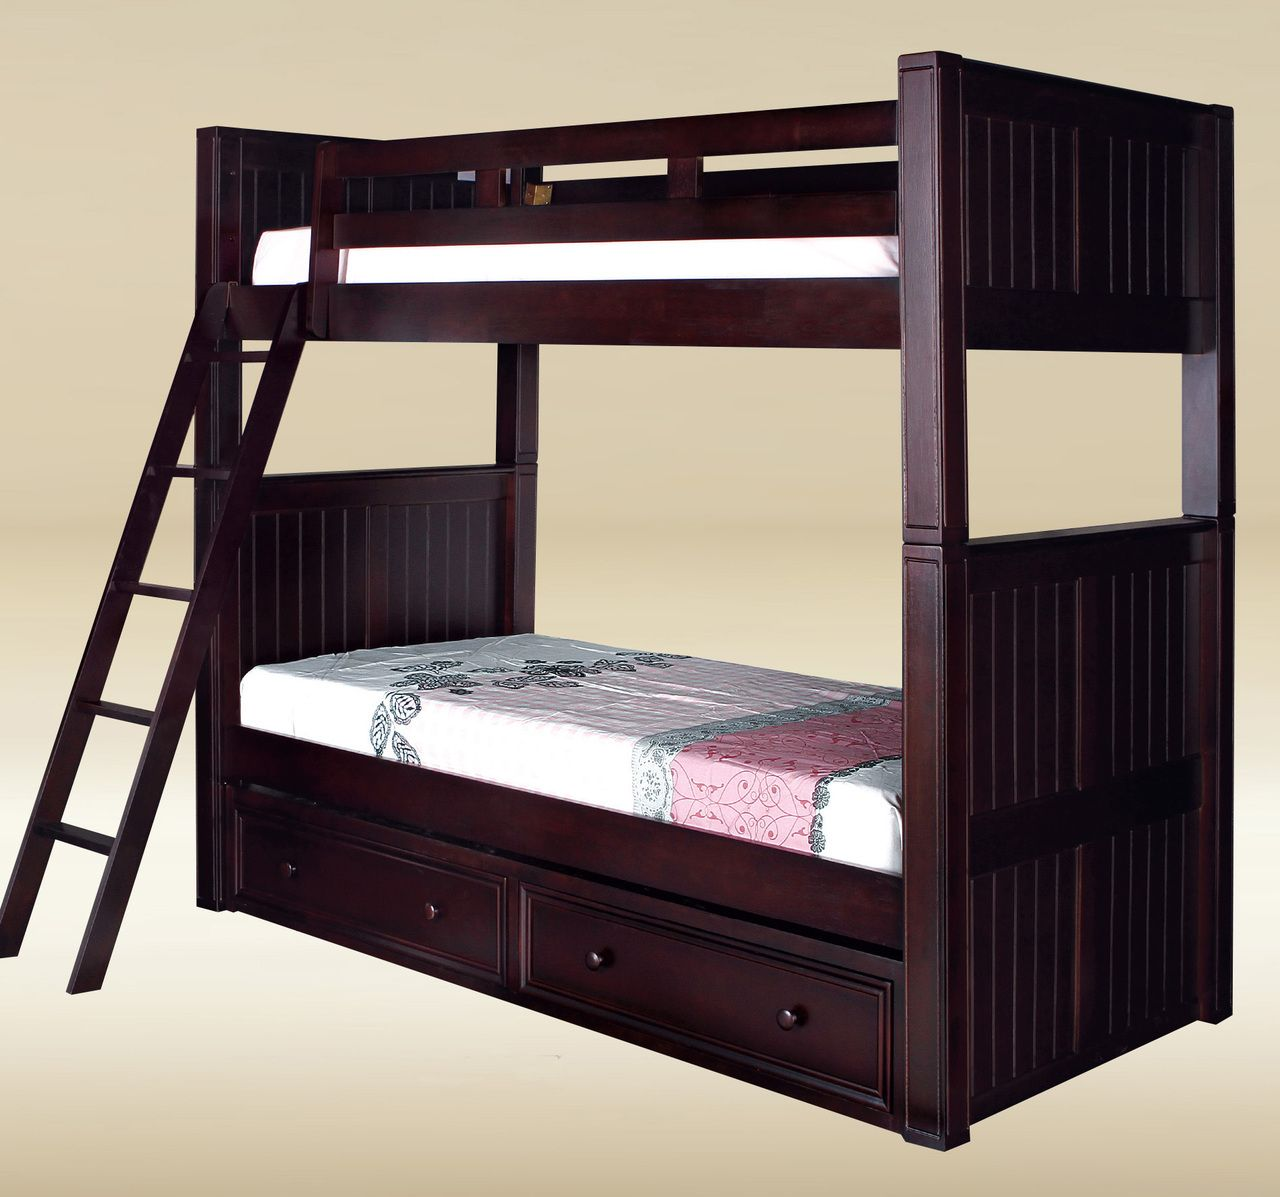 Dillon Extra Long Twin Over Twin Bunk Bed Twin Bunk Beds Bunk Beds With Stairs Bed Interior